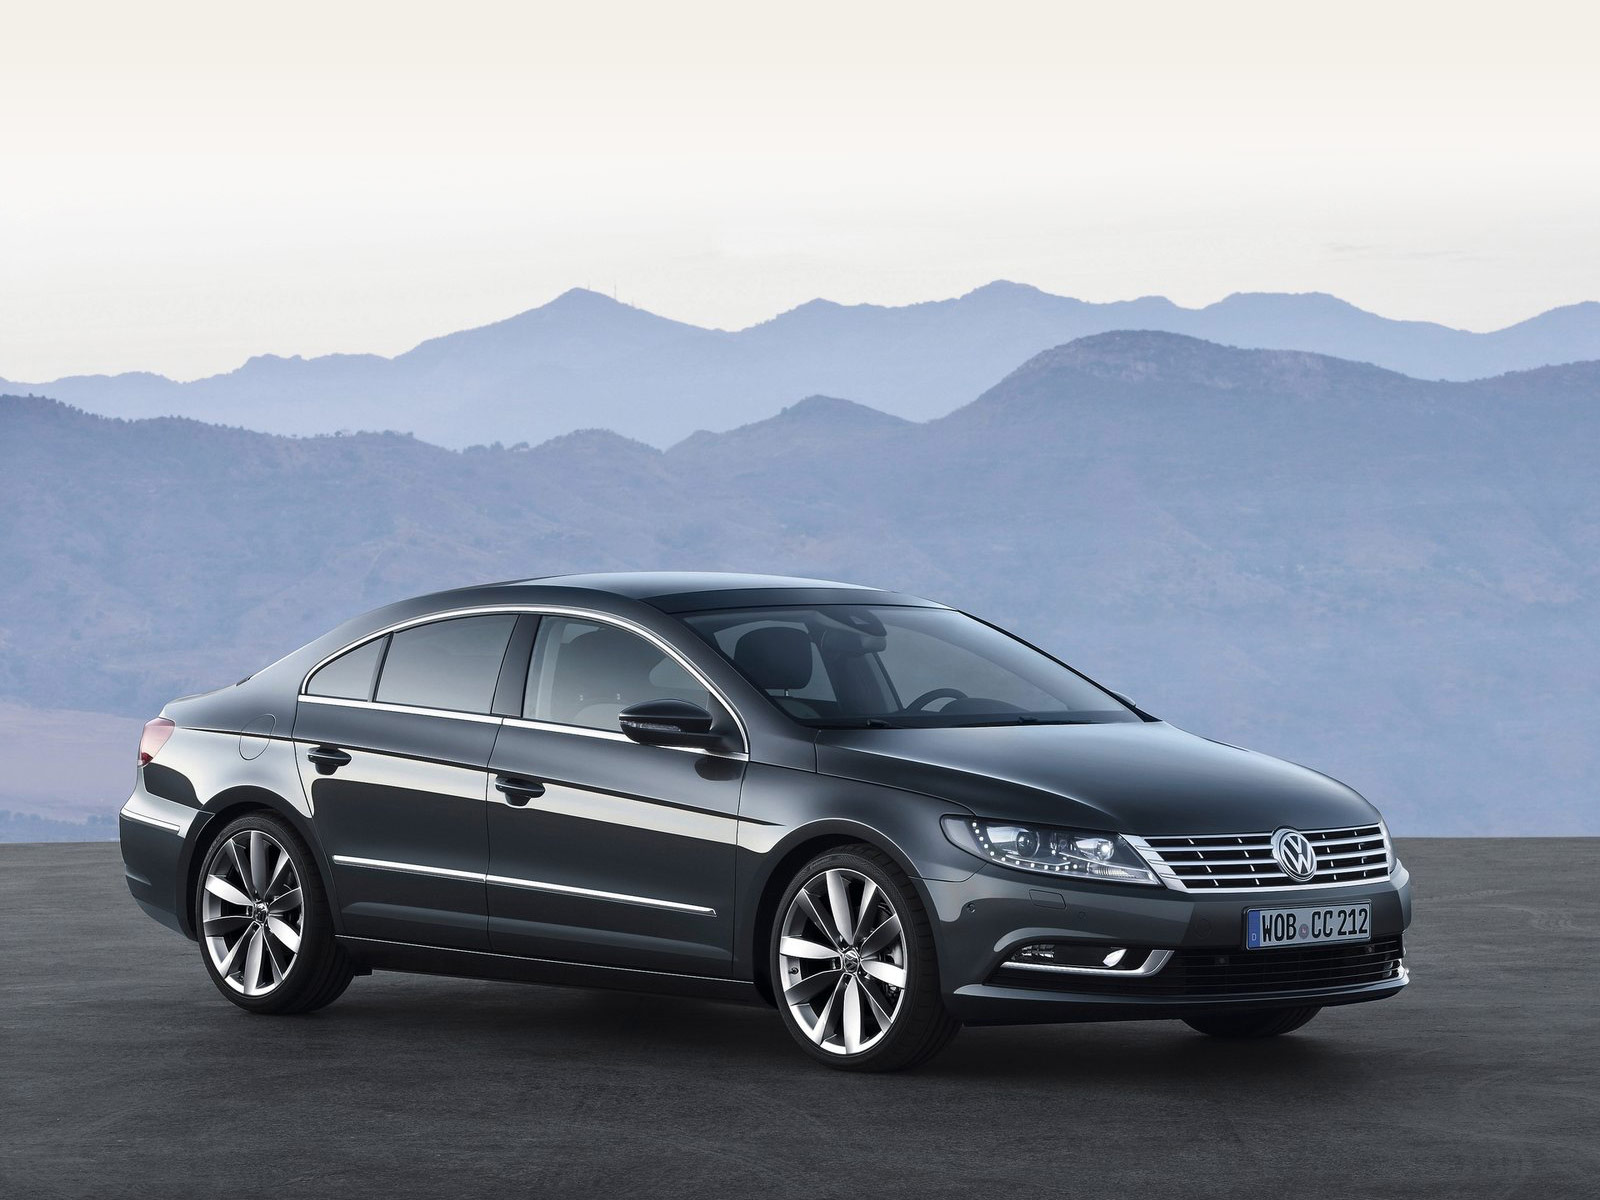 2013 volkswagen passat cc vw car desktop wallpaper auto trends magazine. Black Bedroom Furniture Sets. Home Design Ideas